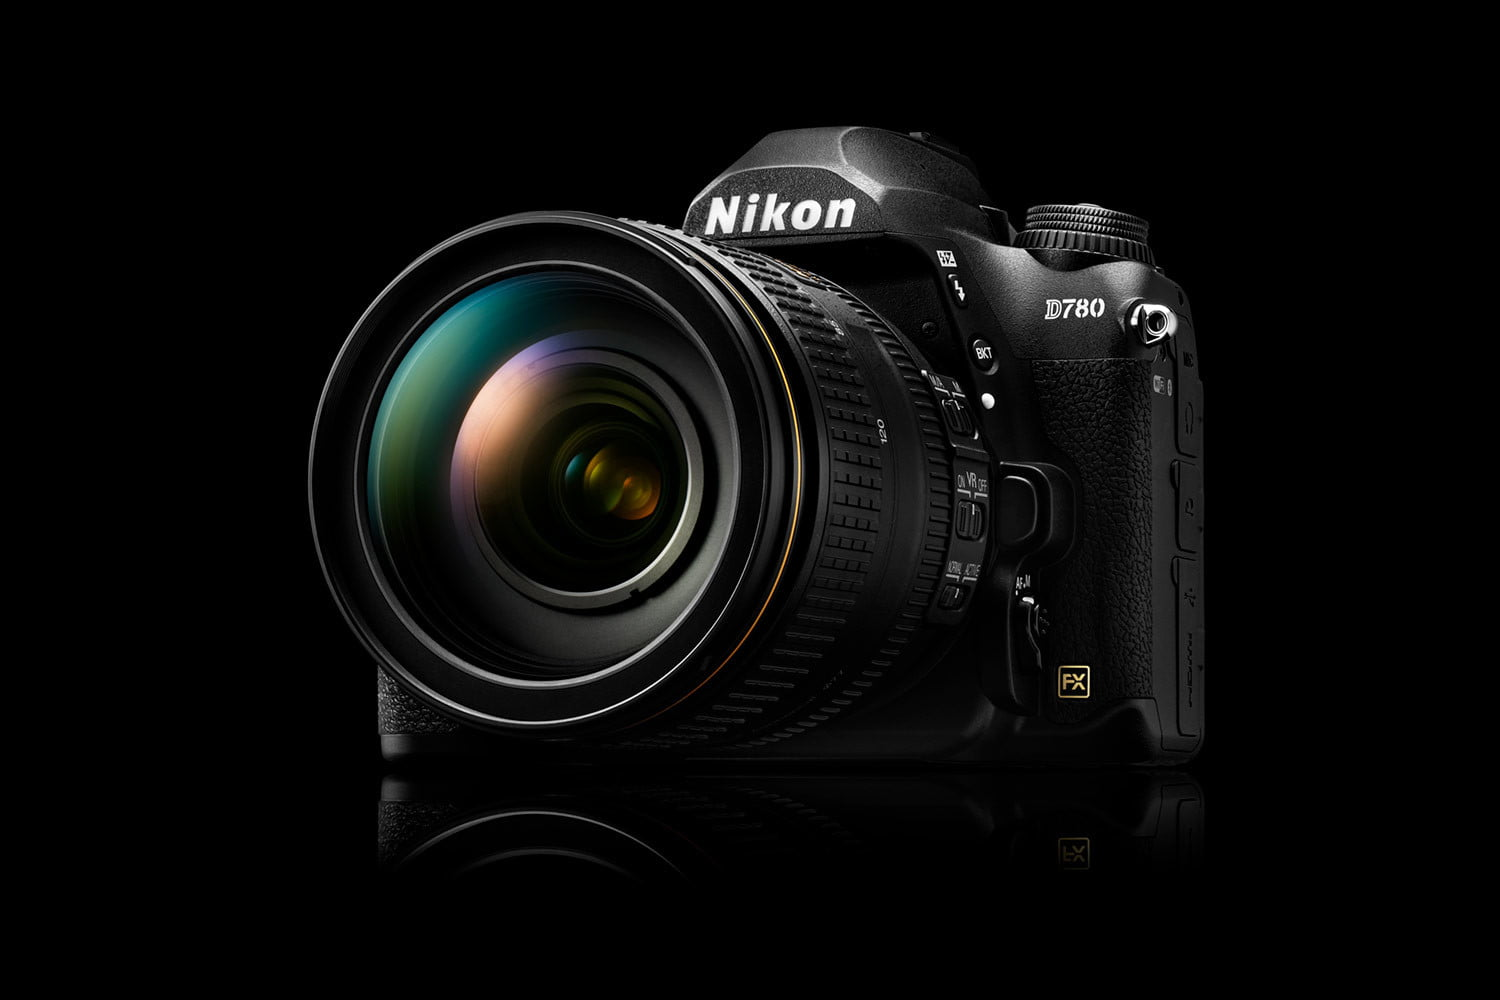 nikon d780 long awaited successor to d750 is here ces 2020 hero press image